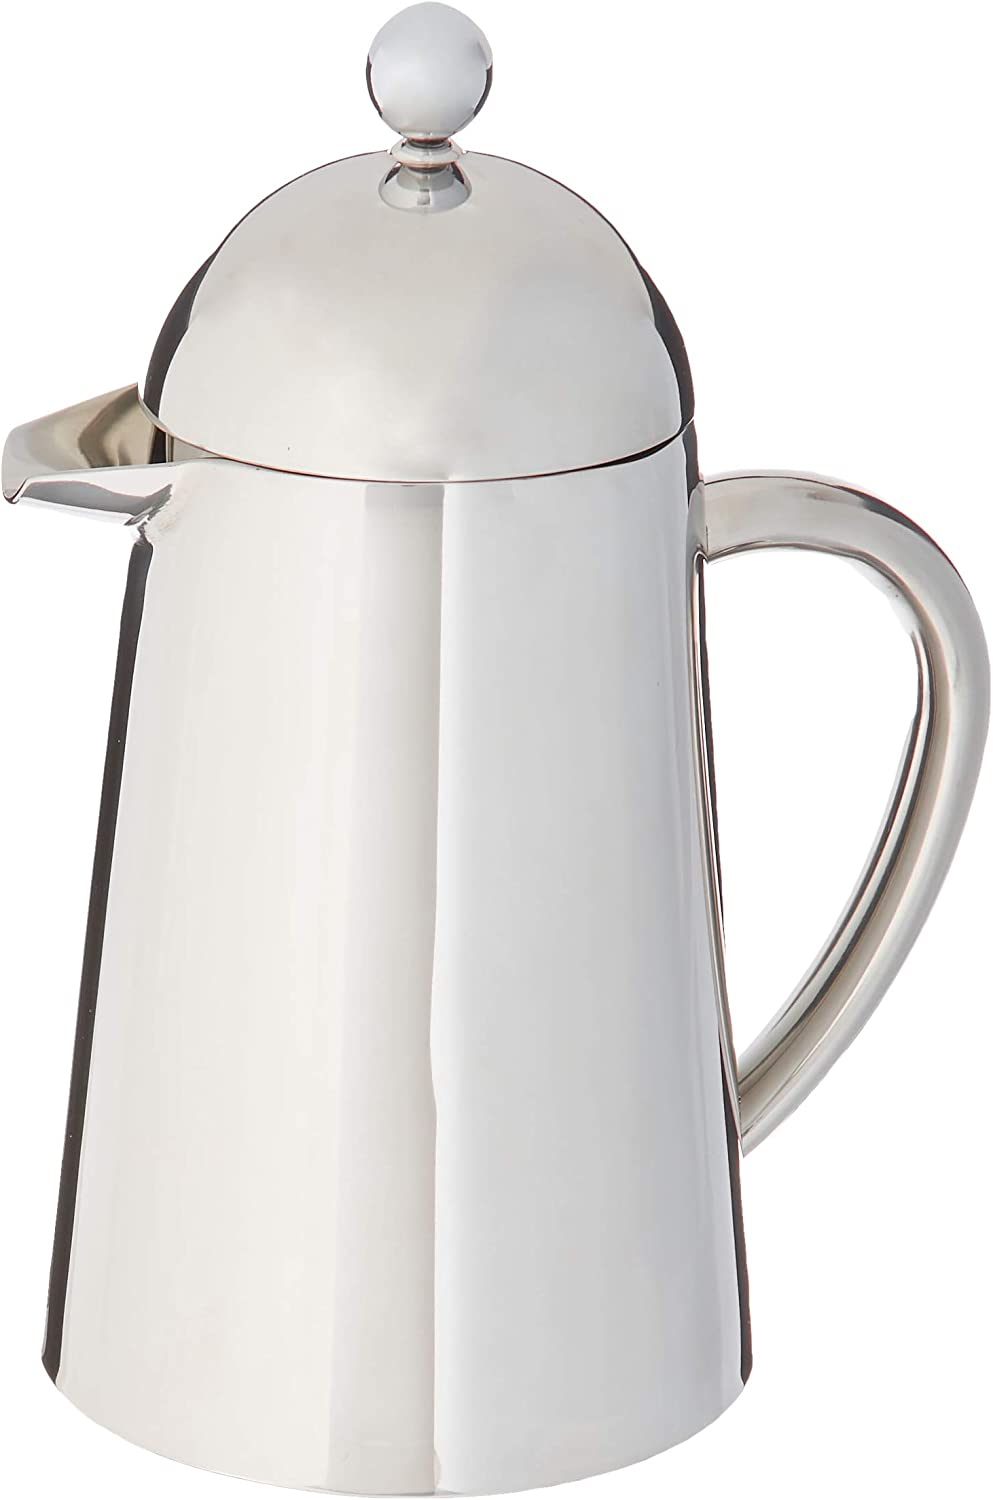 Francois et Mimi Stainless Steel Double Wall French Coffee Press 34oz